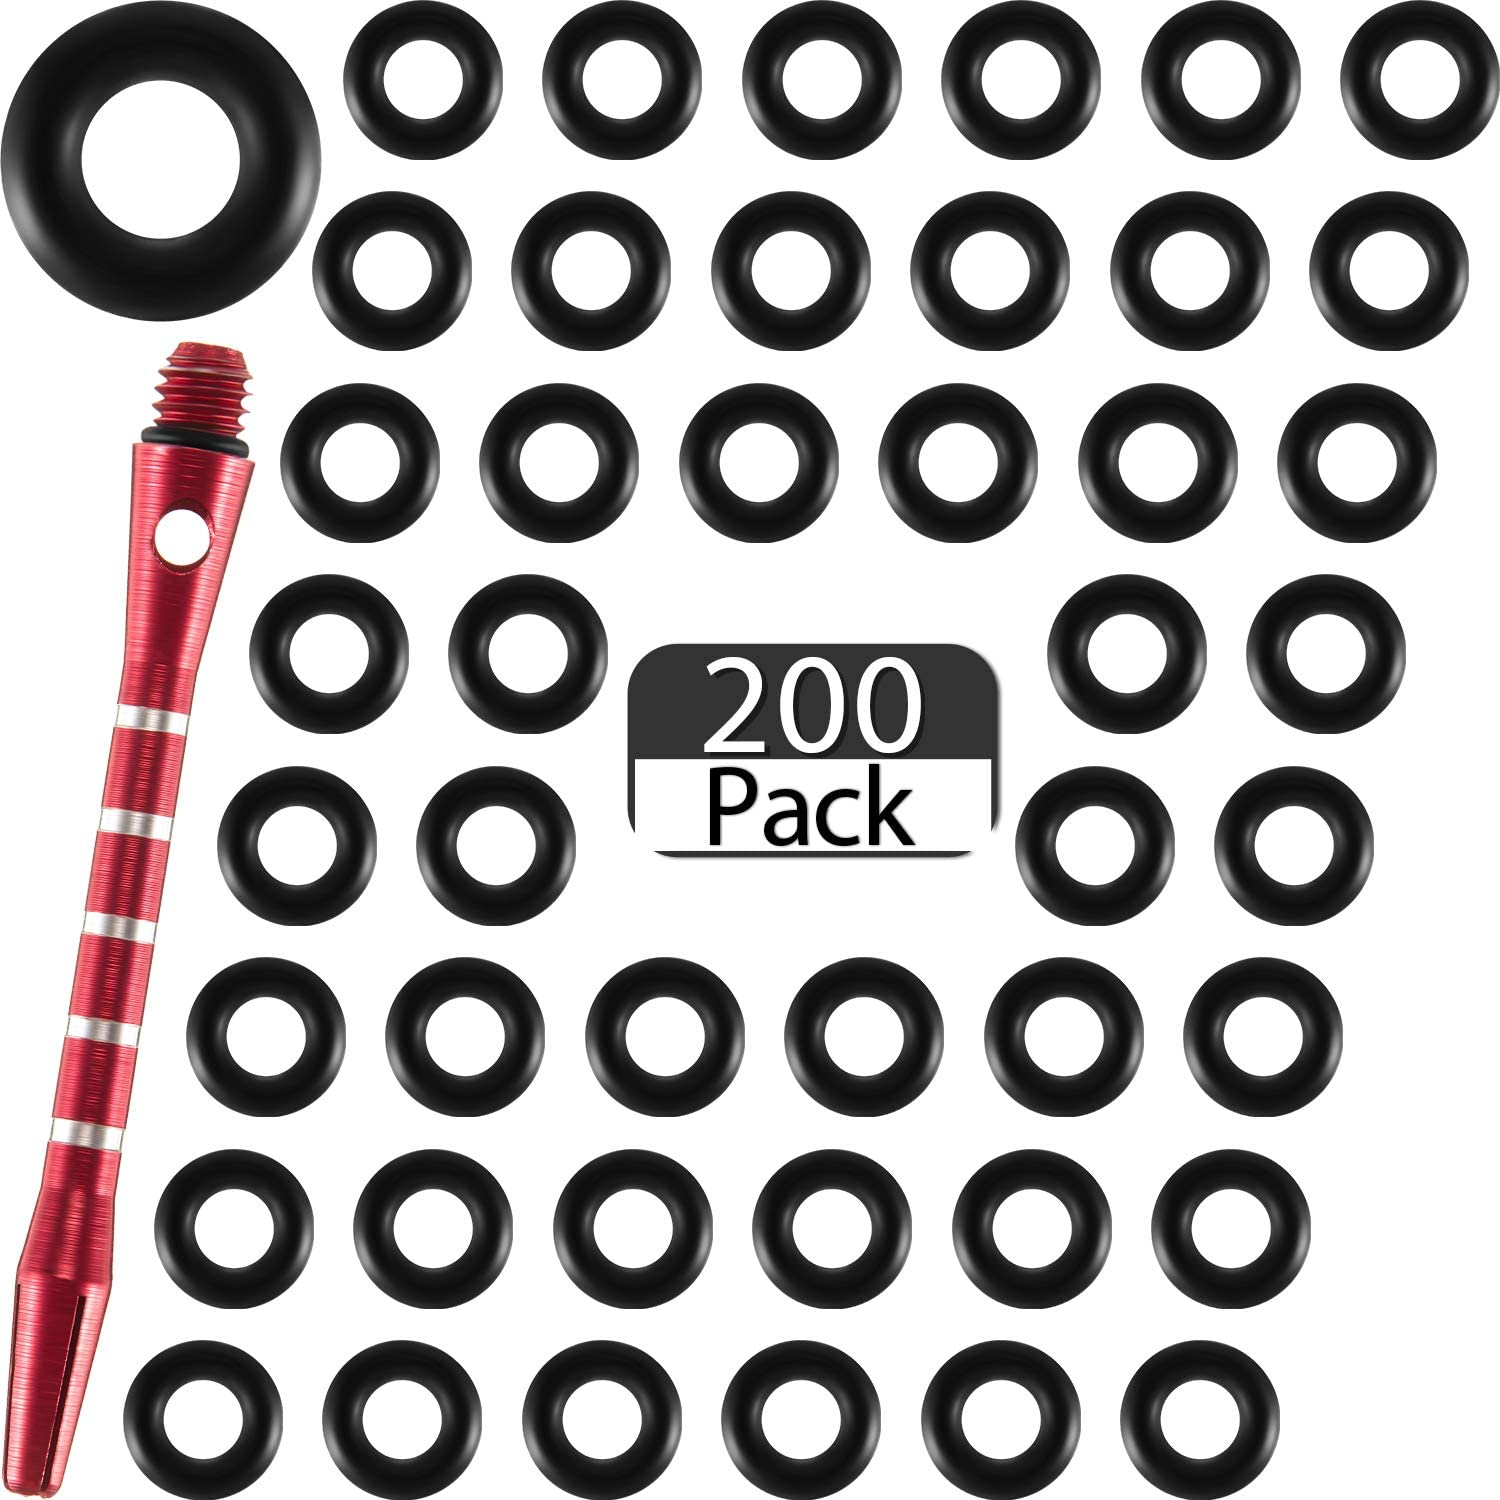 200 Pieces NEW Dart Shaft O-Rings Rings Non-Slip Online limited product Washer Rubber